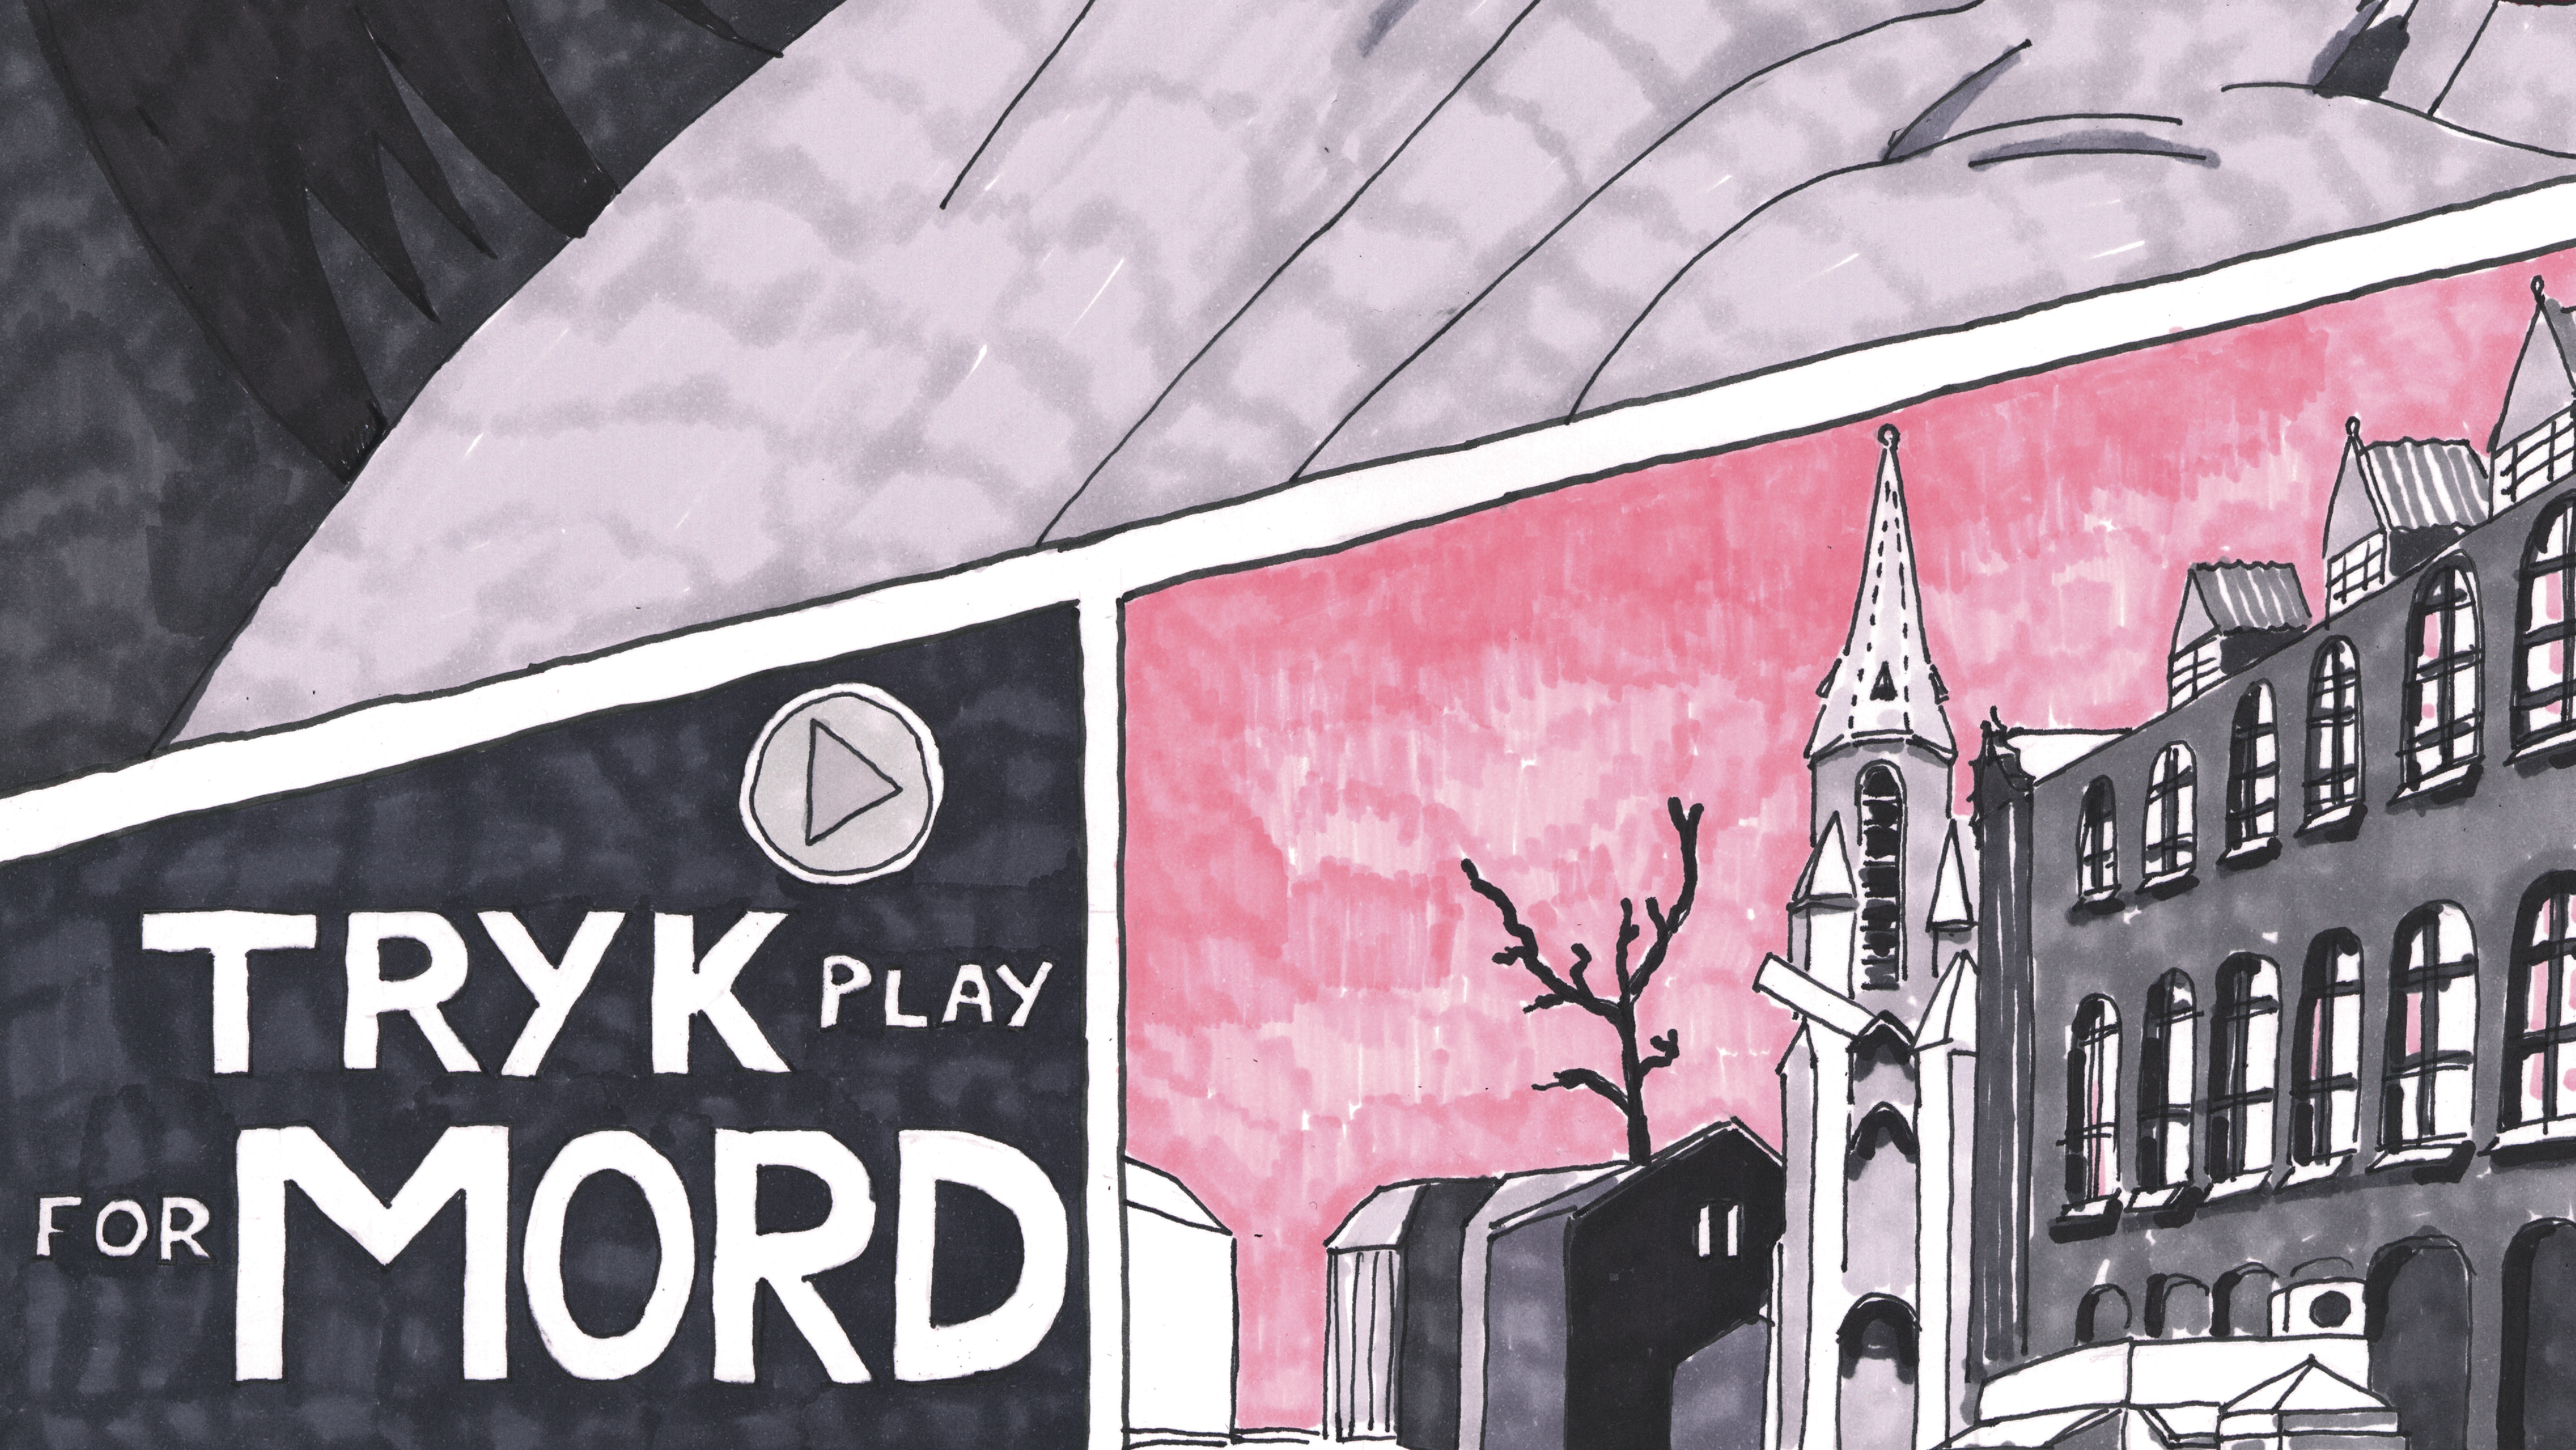 Tryk play for mord 2:5 | special-radio | DR